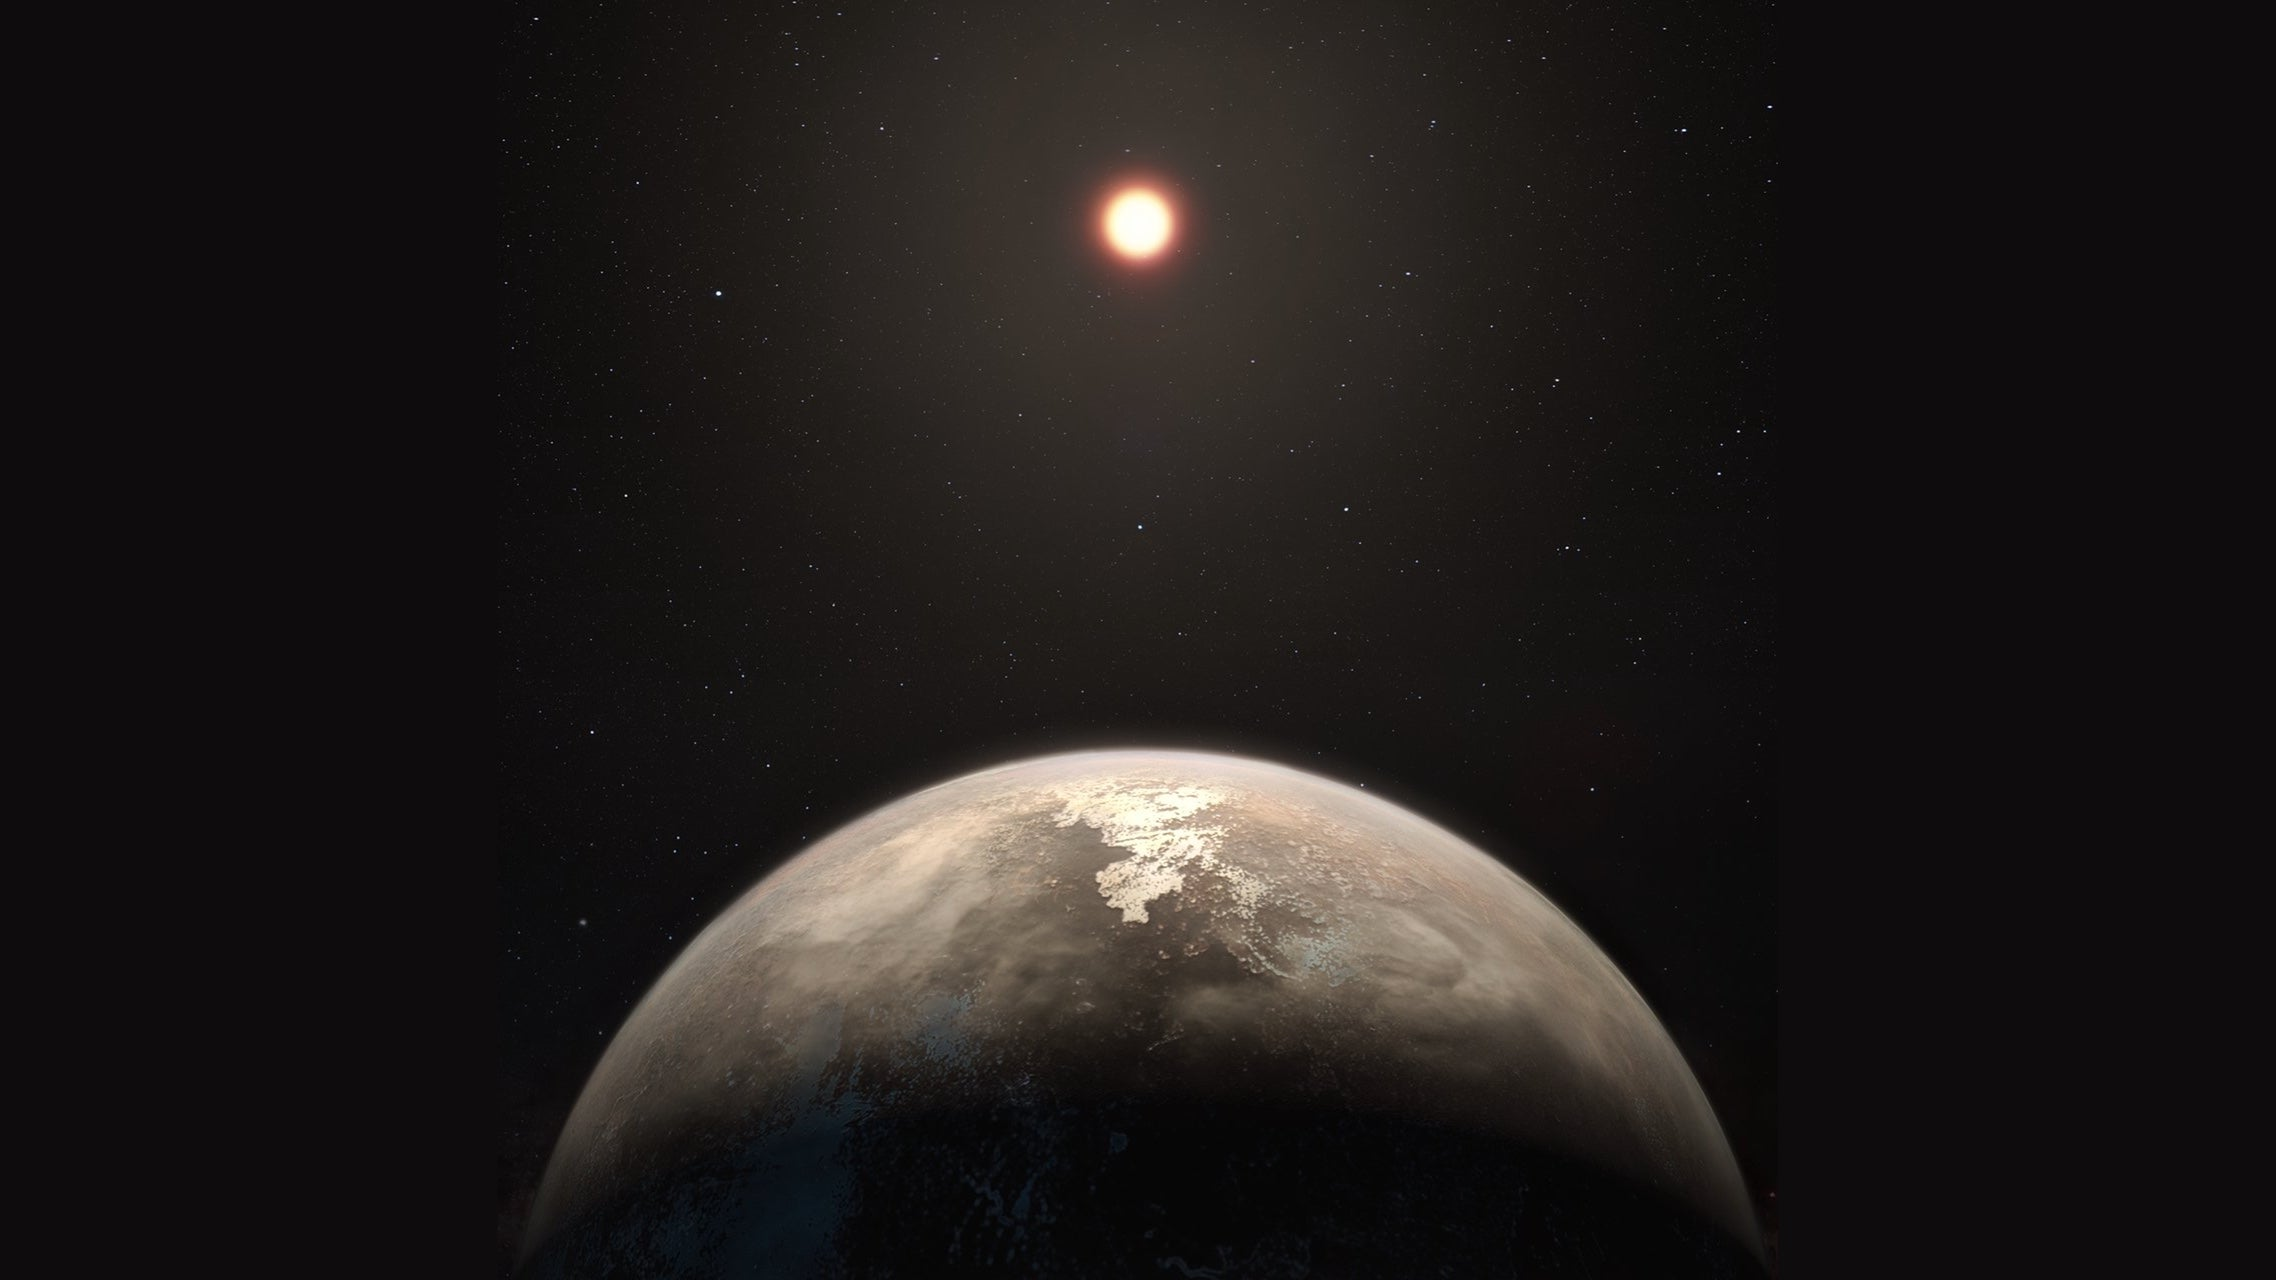 Nearby exoplanet is a target for life